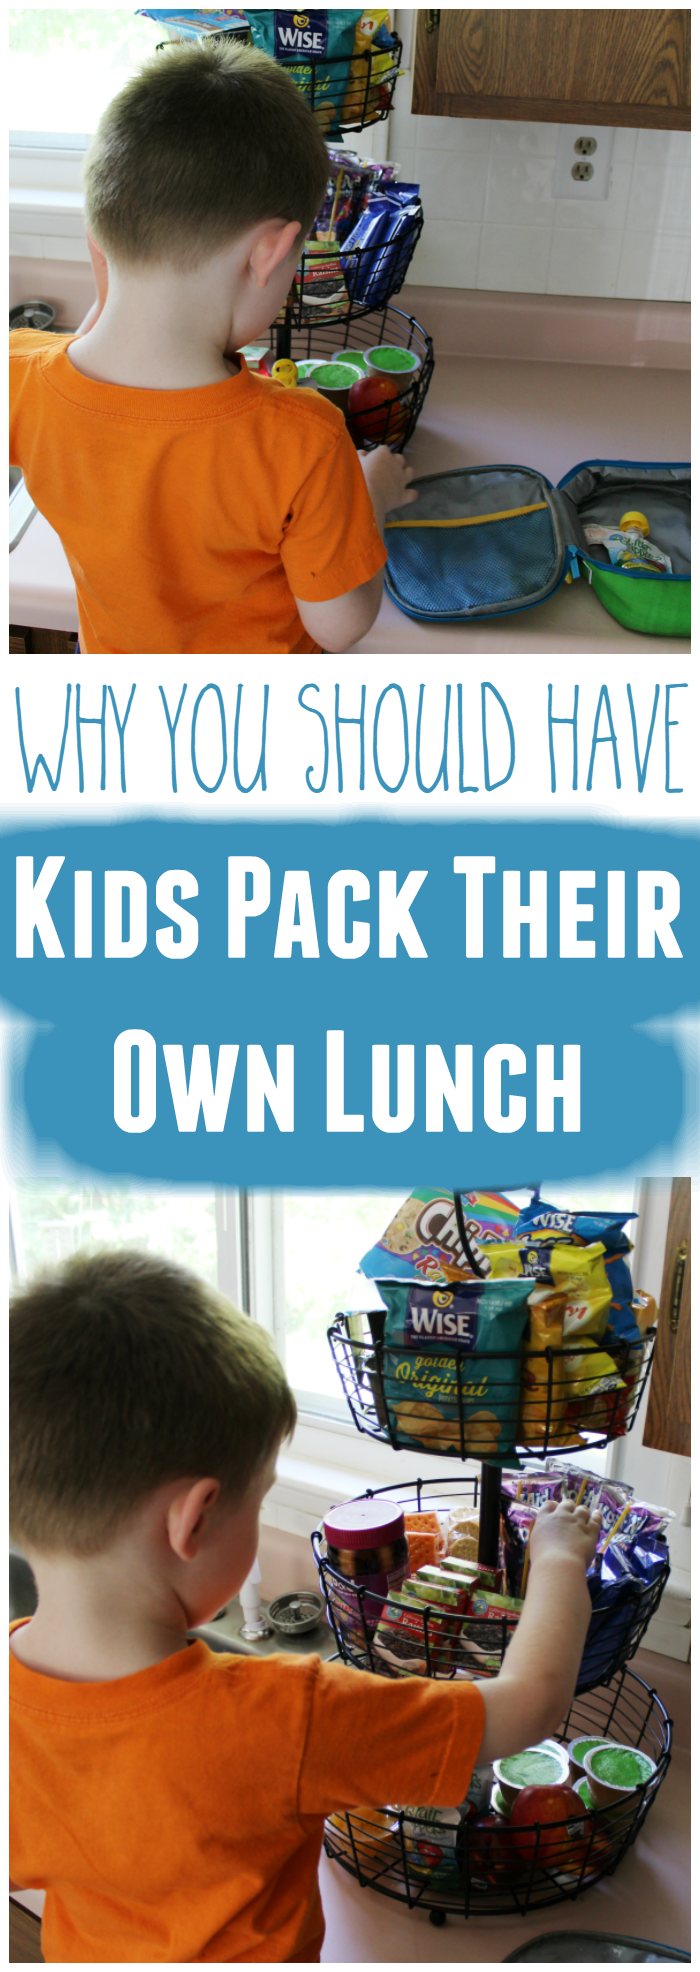 Kids Should Pack Their Own Lunch